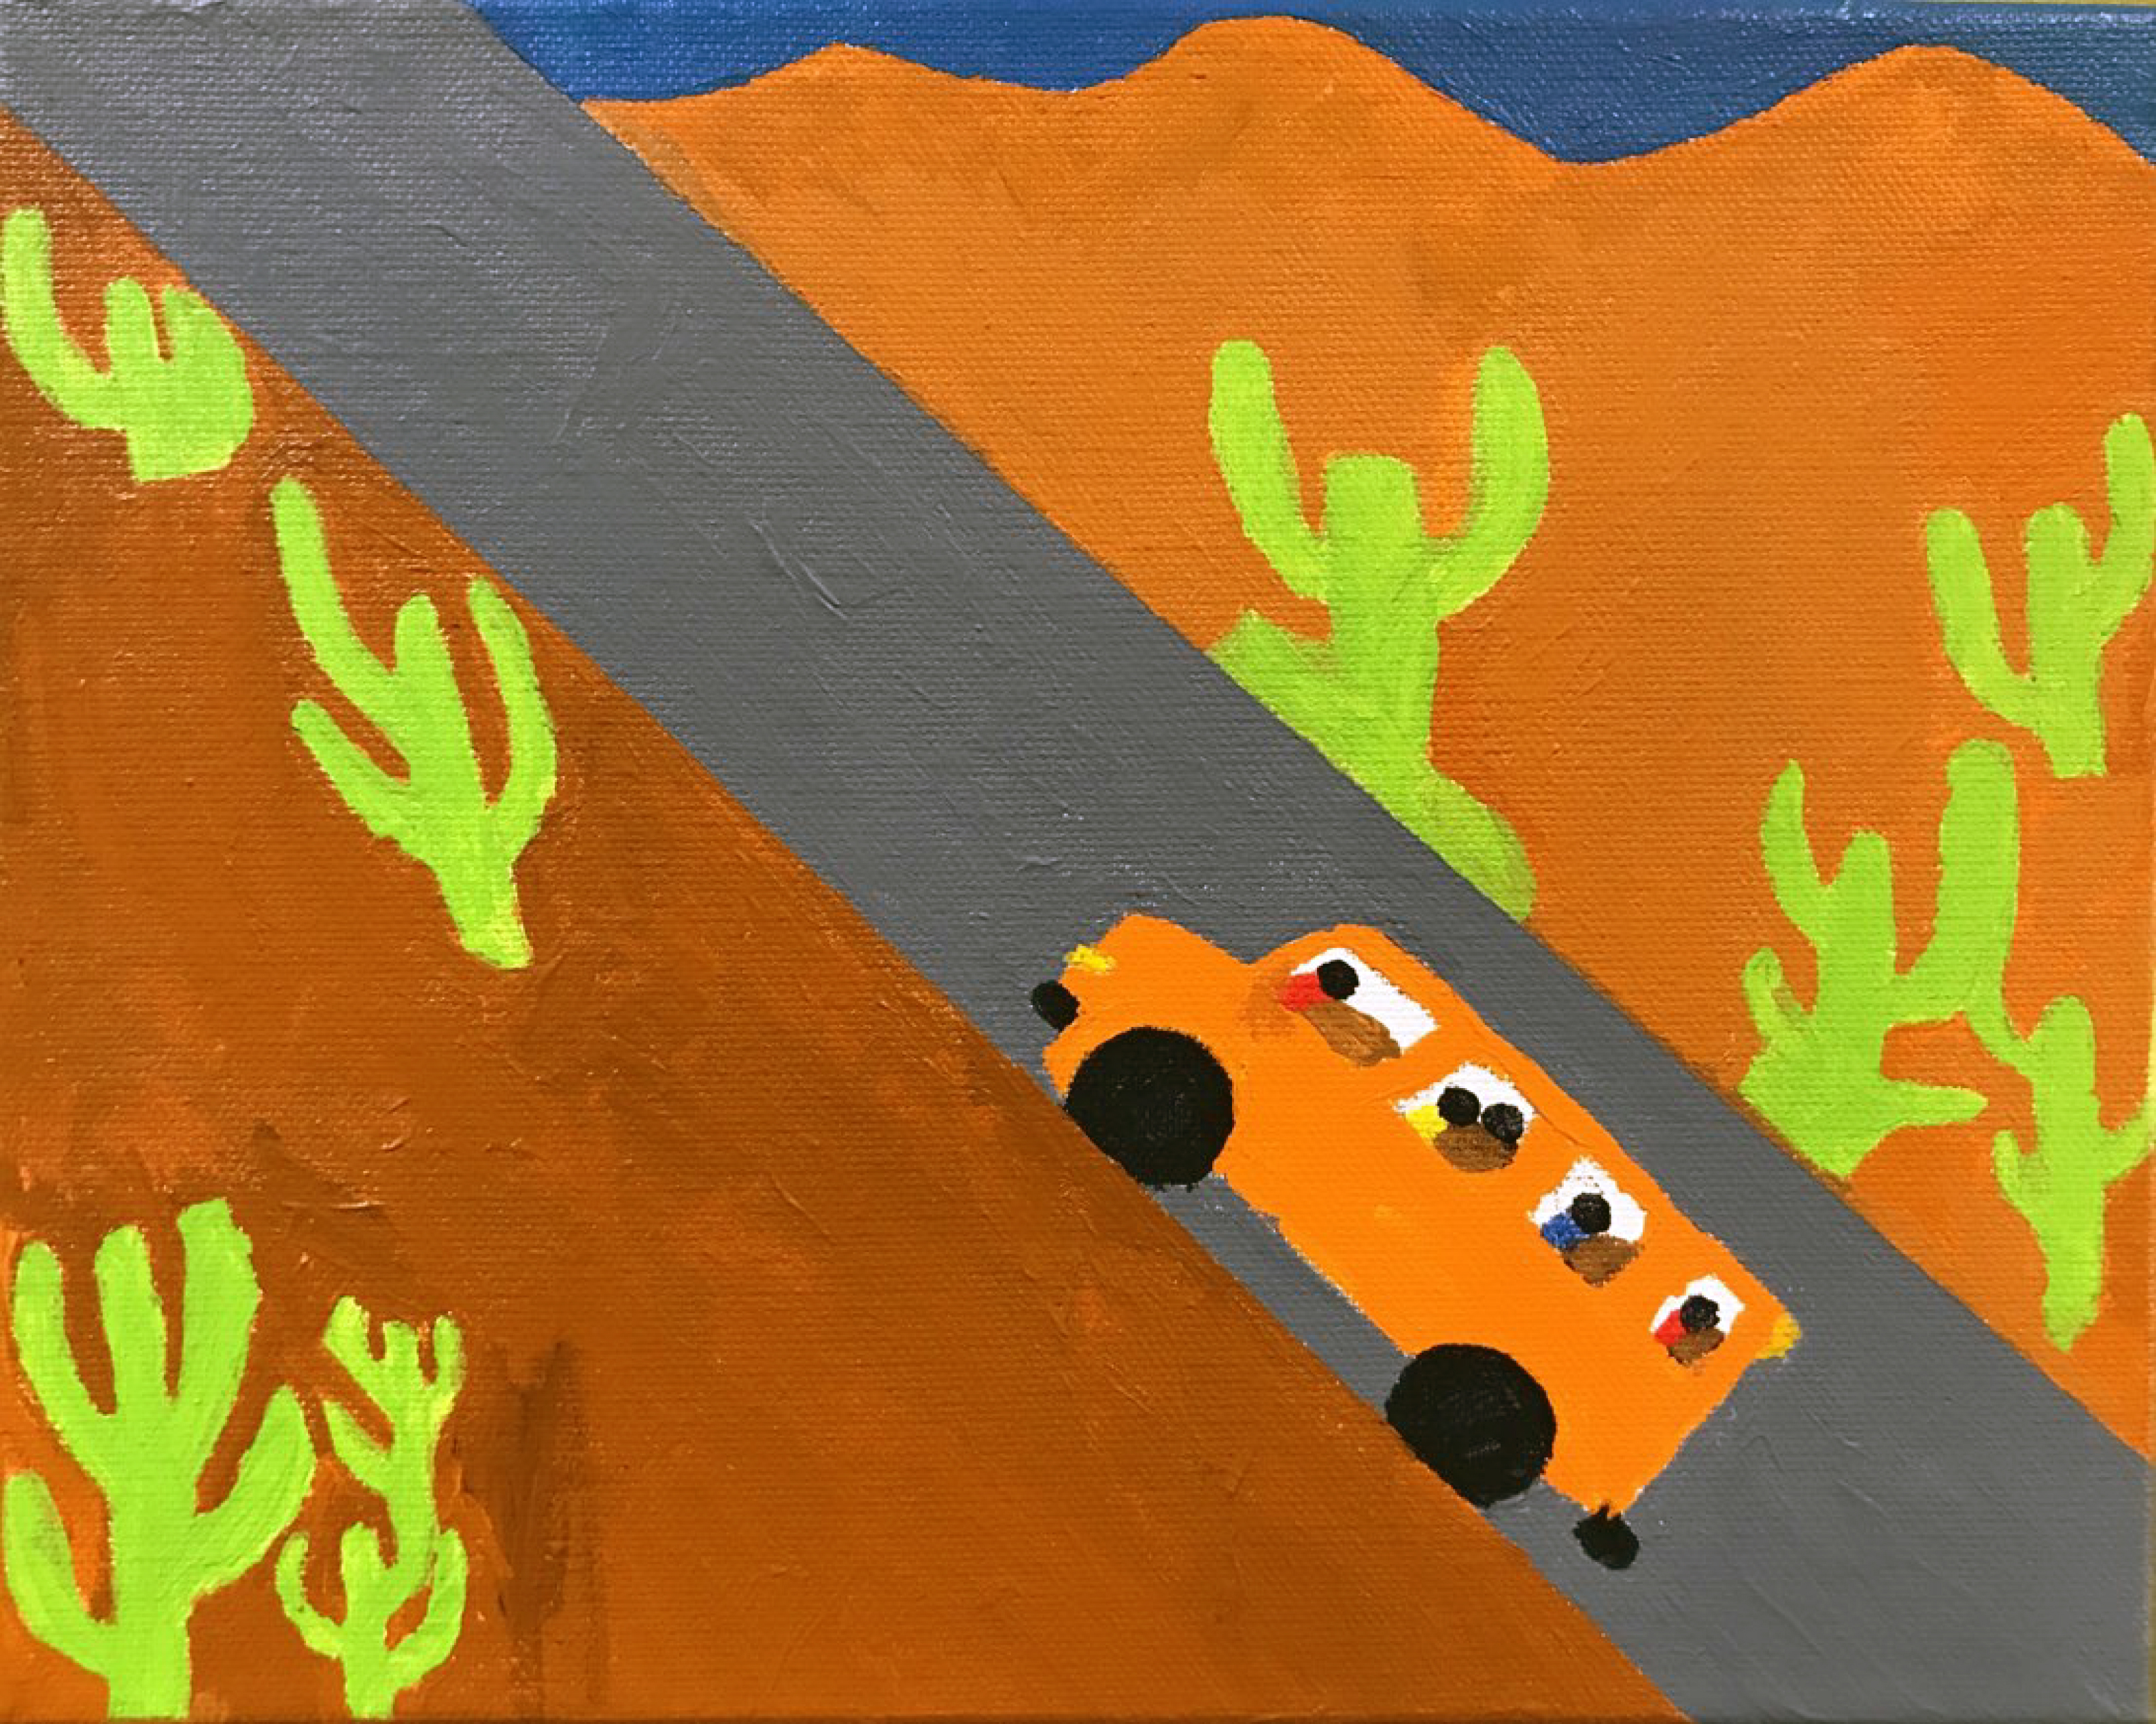 A bus drives on a road in the desert with mountains and cacti on either side of the road.